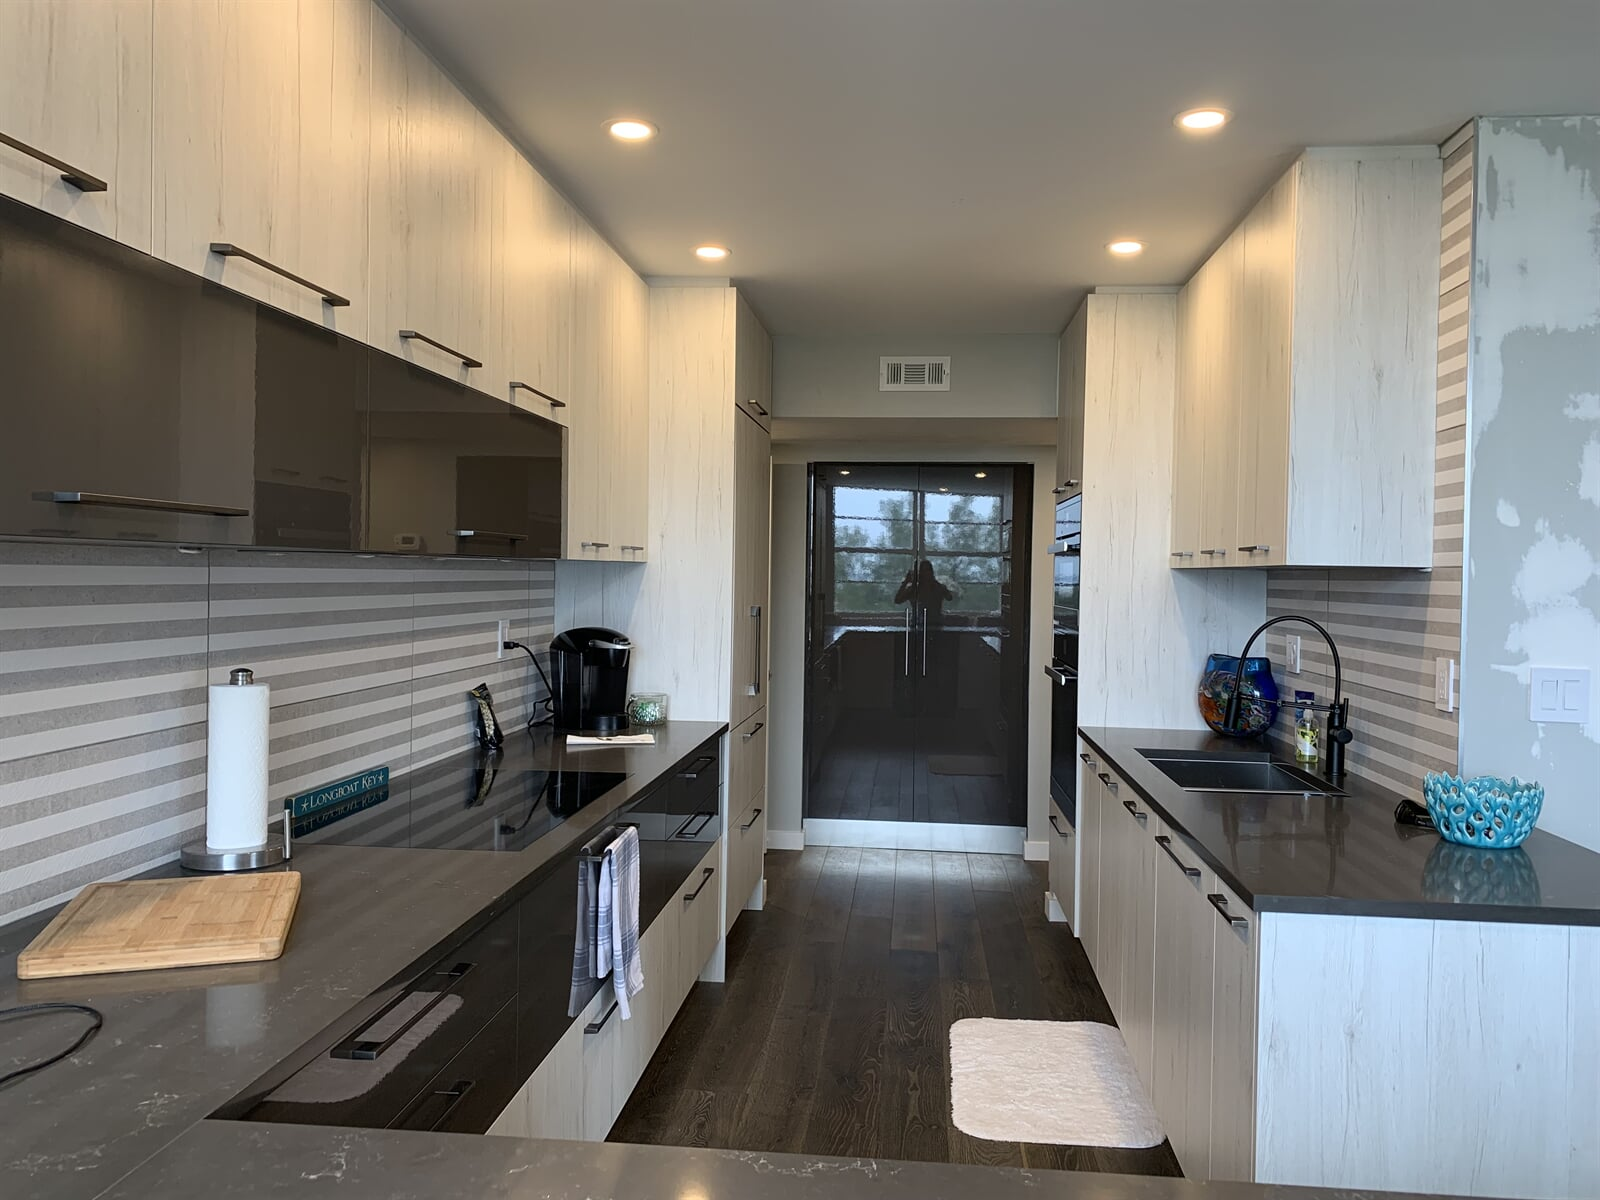 Custom kitchens in Casey Key, FL by Floors and Walls of Distinction